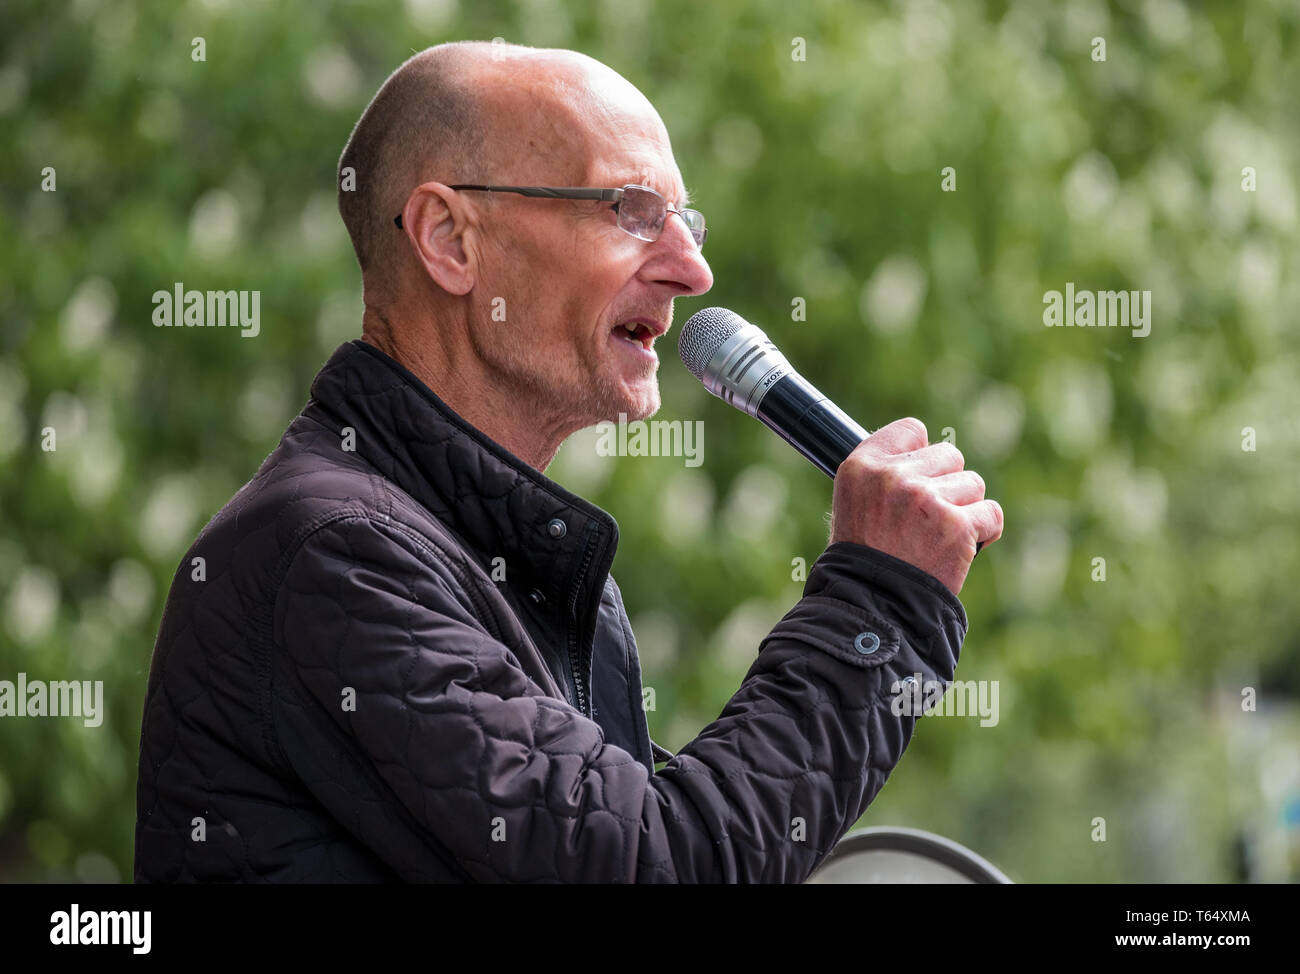 Oxford World Day for Animals in Laboratories.  Animal rights activist Mel Broughton speaking at the rally outside Oxford University biomedical labs. - Stock Image